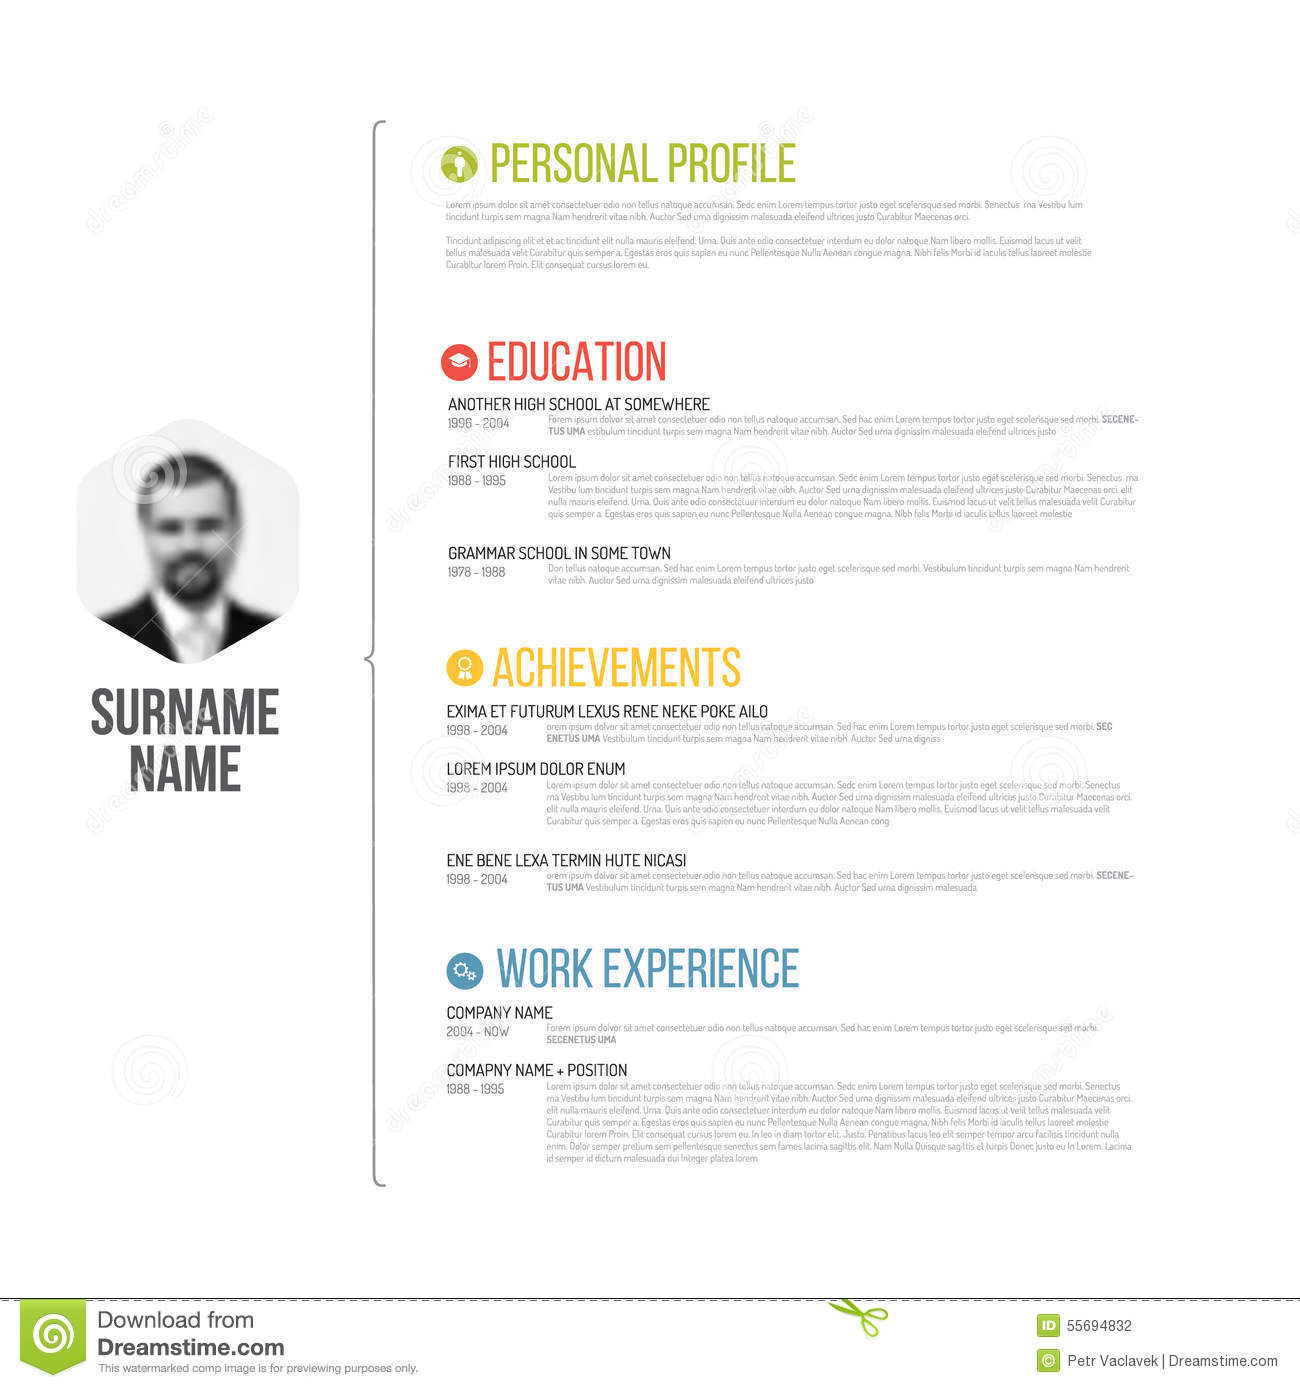 Cv Resume Template Stock Vector Image Of Personal 55694832